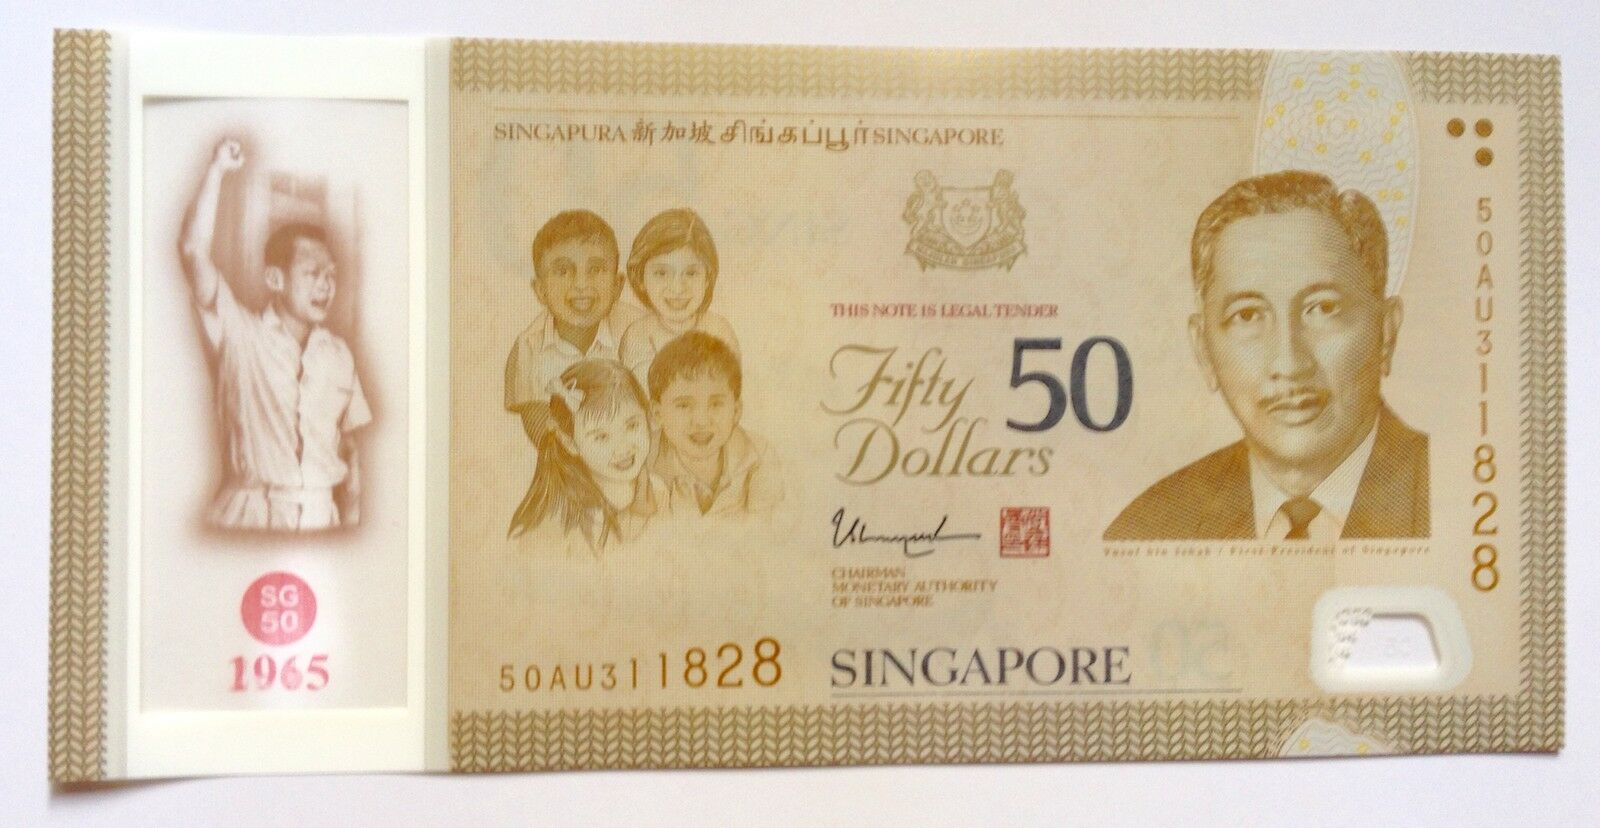 Singapore 2015 SG50 Polymer Commemorative 1 pc of $50 Note